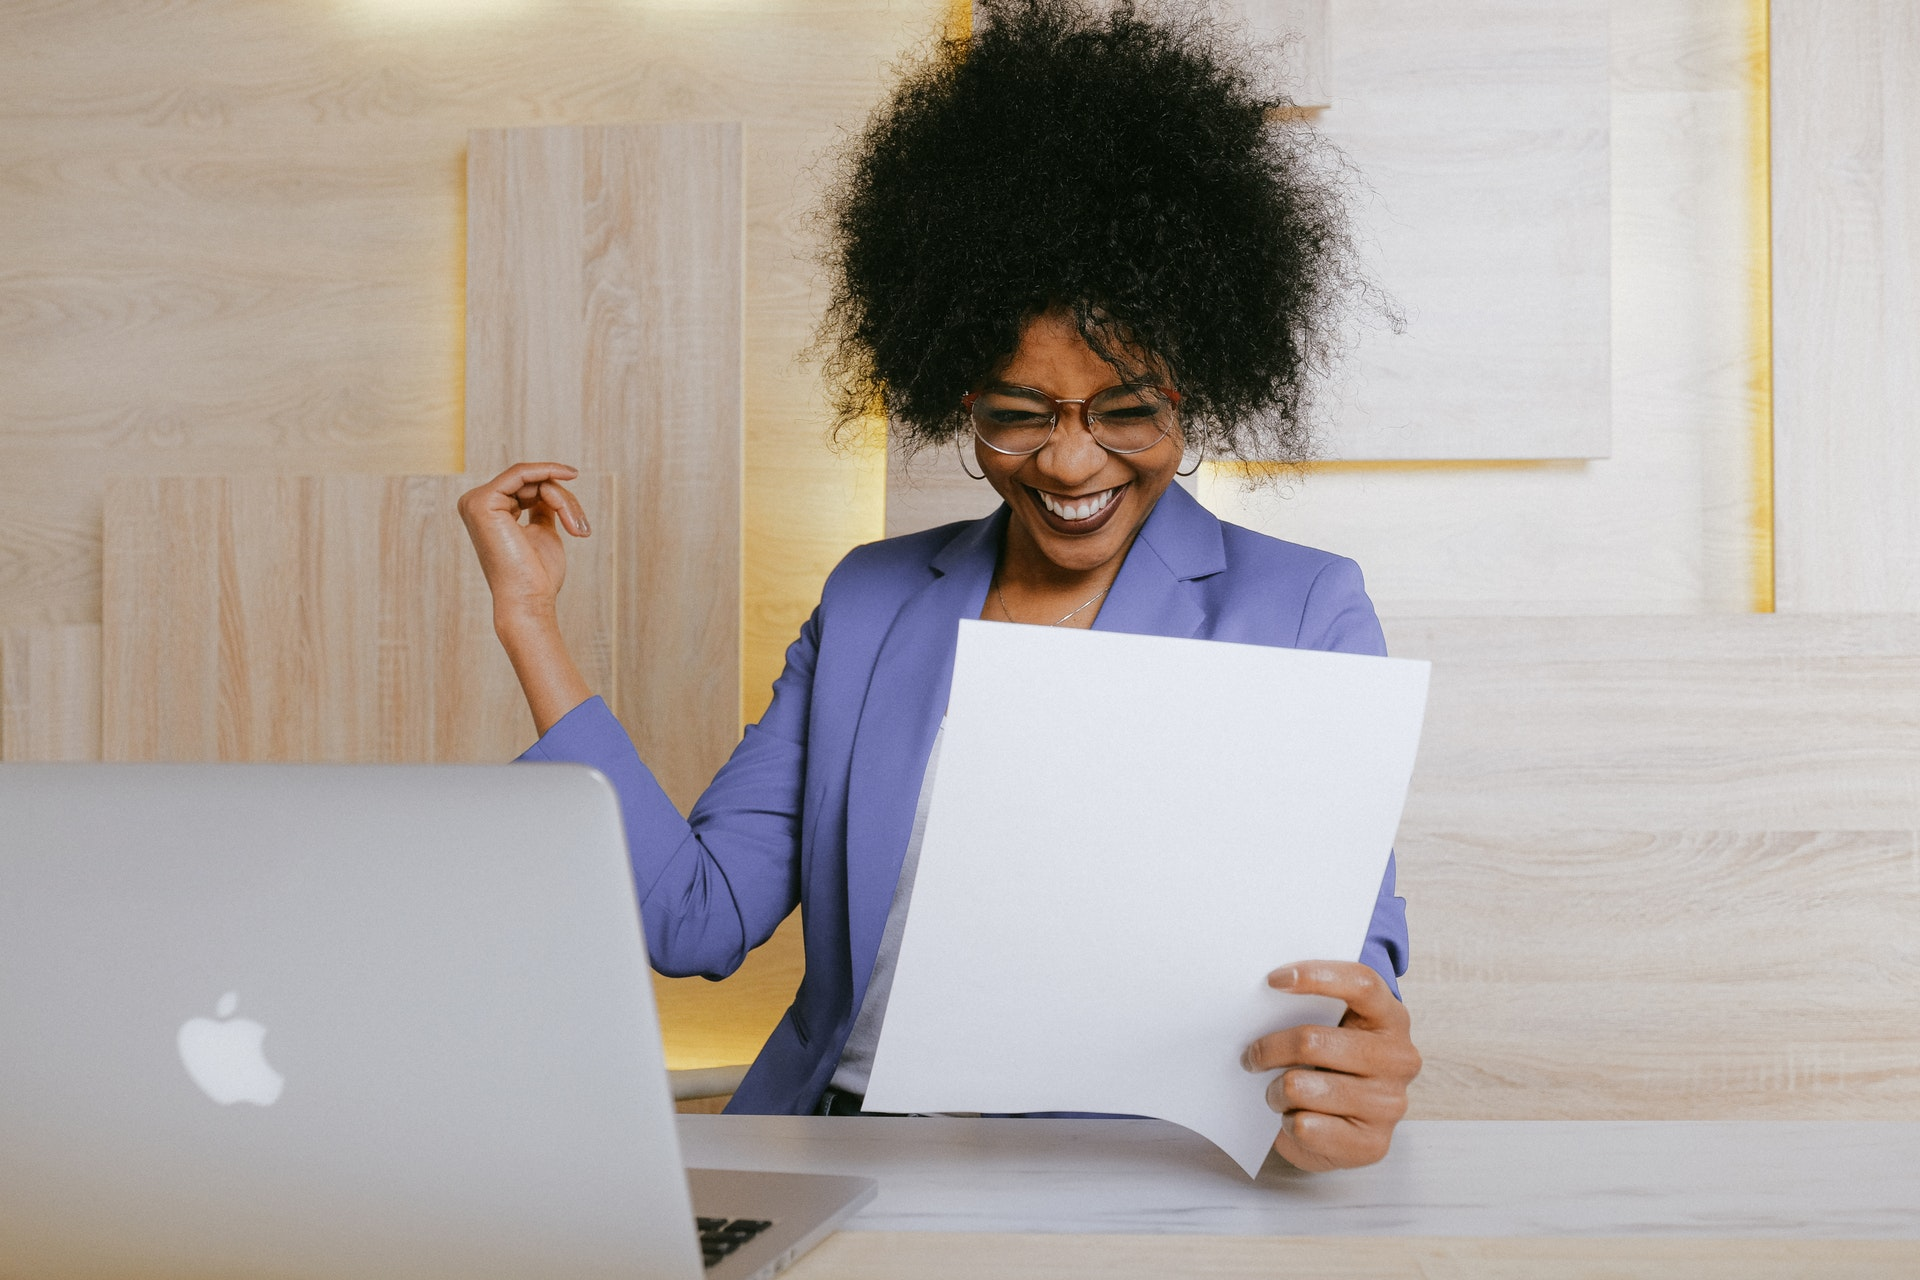 woman seeing her impact at work